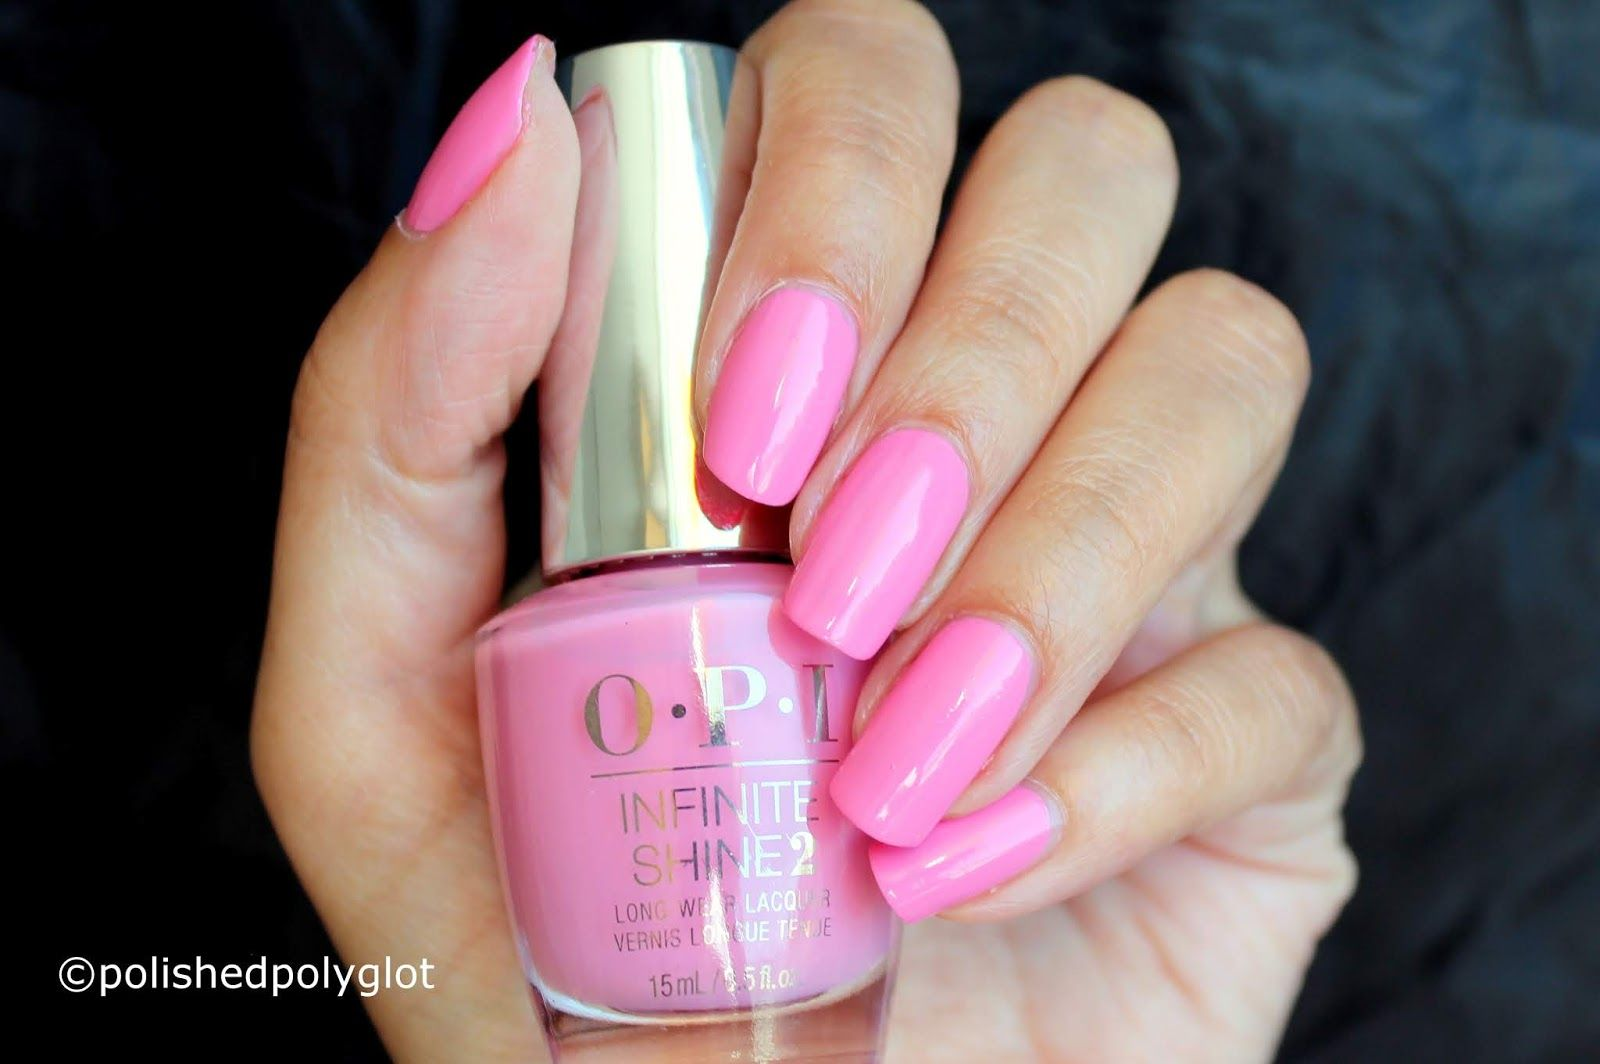 Opi Infinite Shine You Can Count On It Nail Polish Peru Collection By Opi For Fall Winter 2018 Swatches And Review Nail Polish Nails Polish